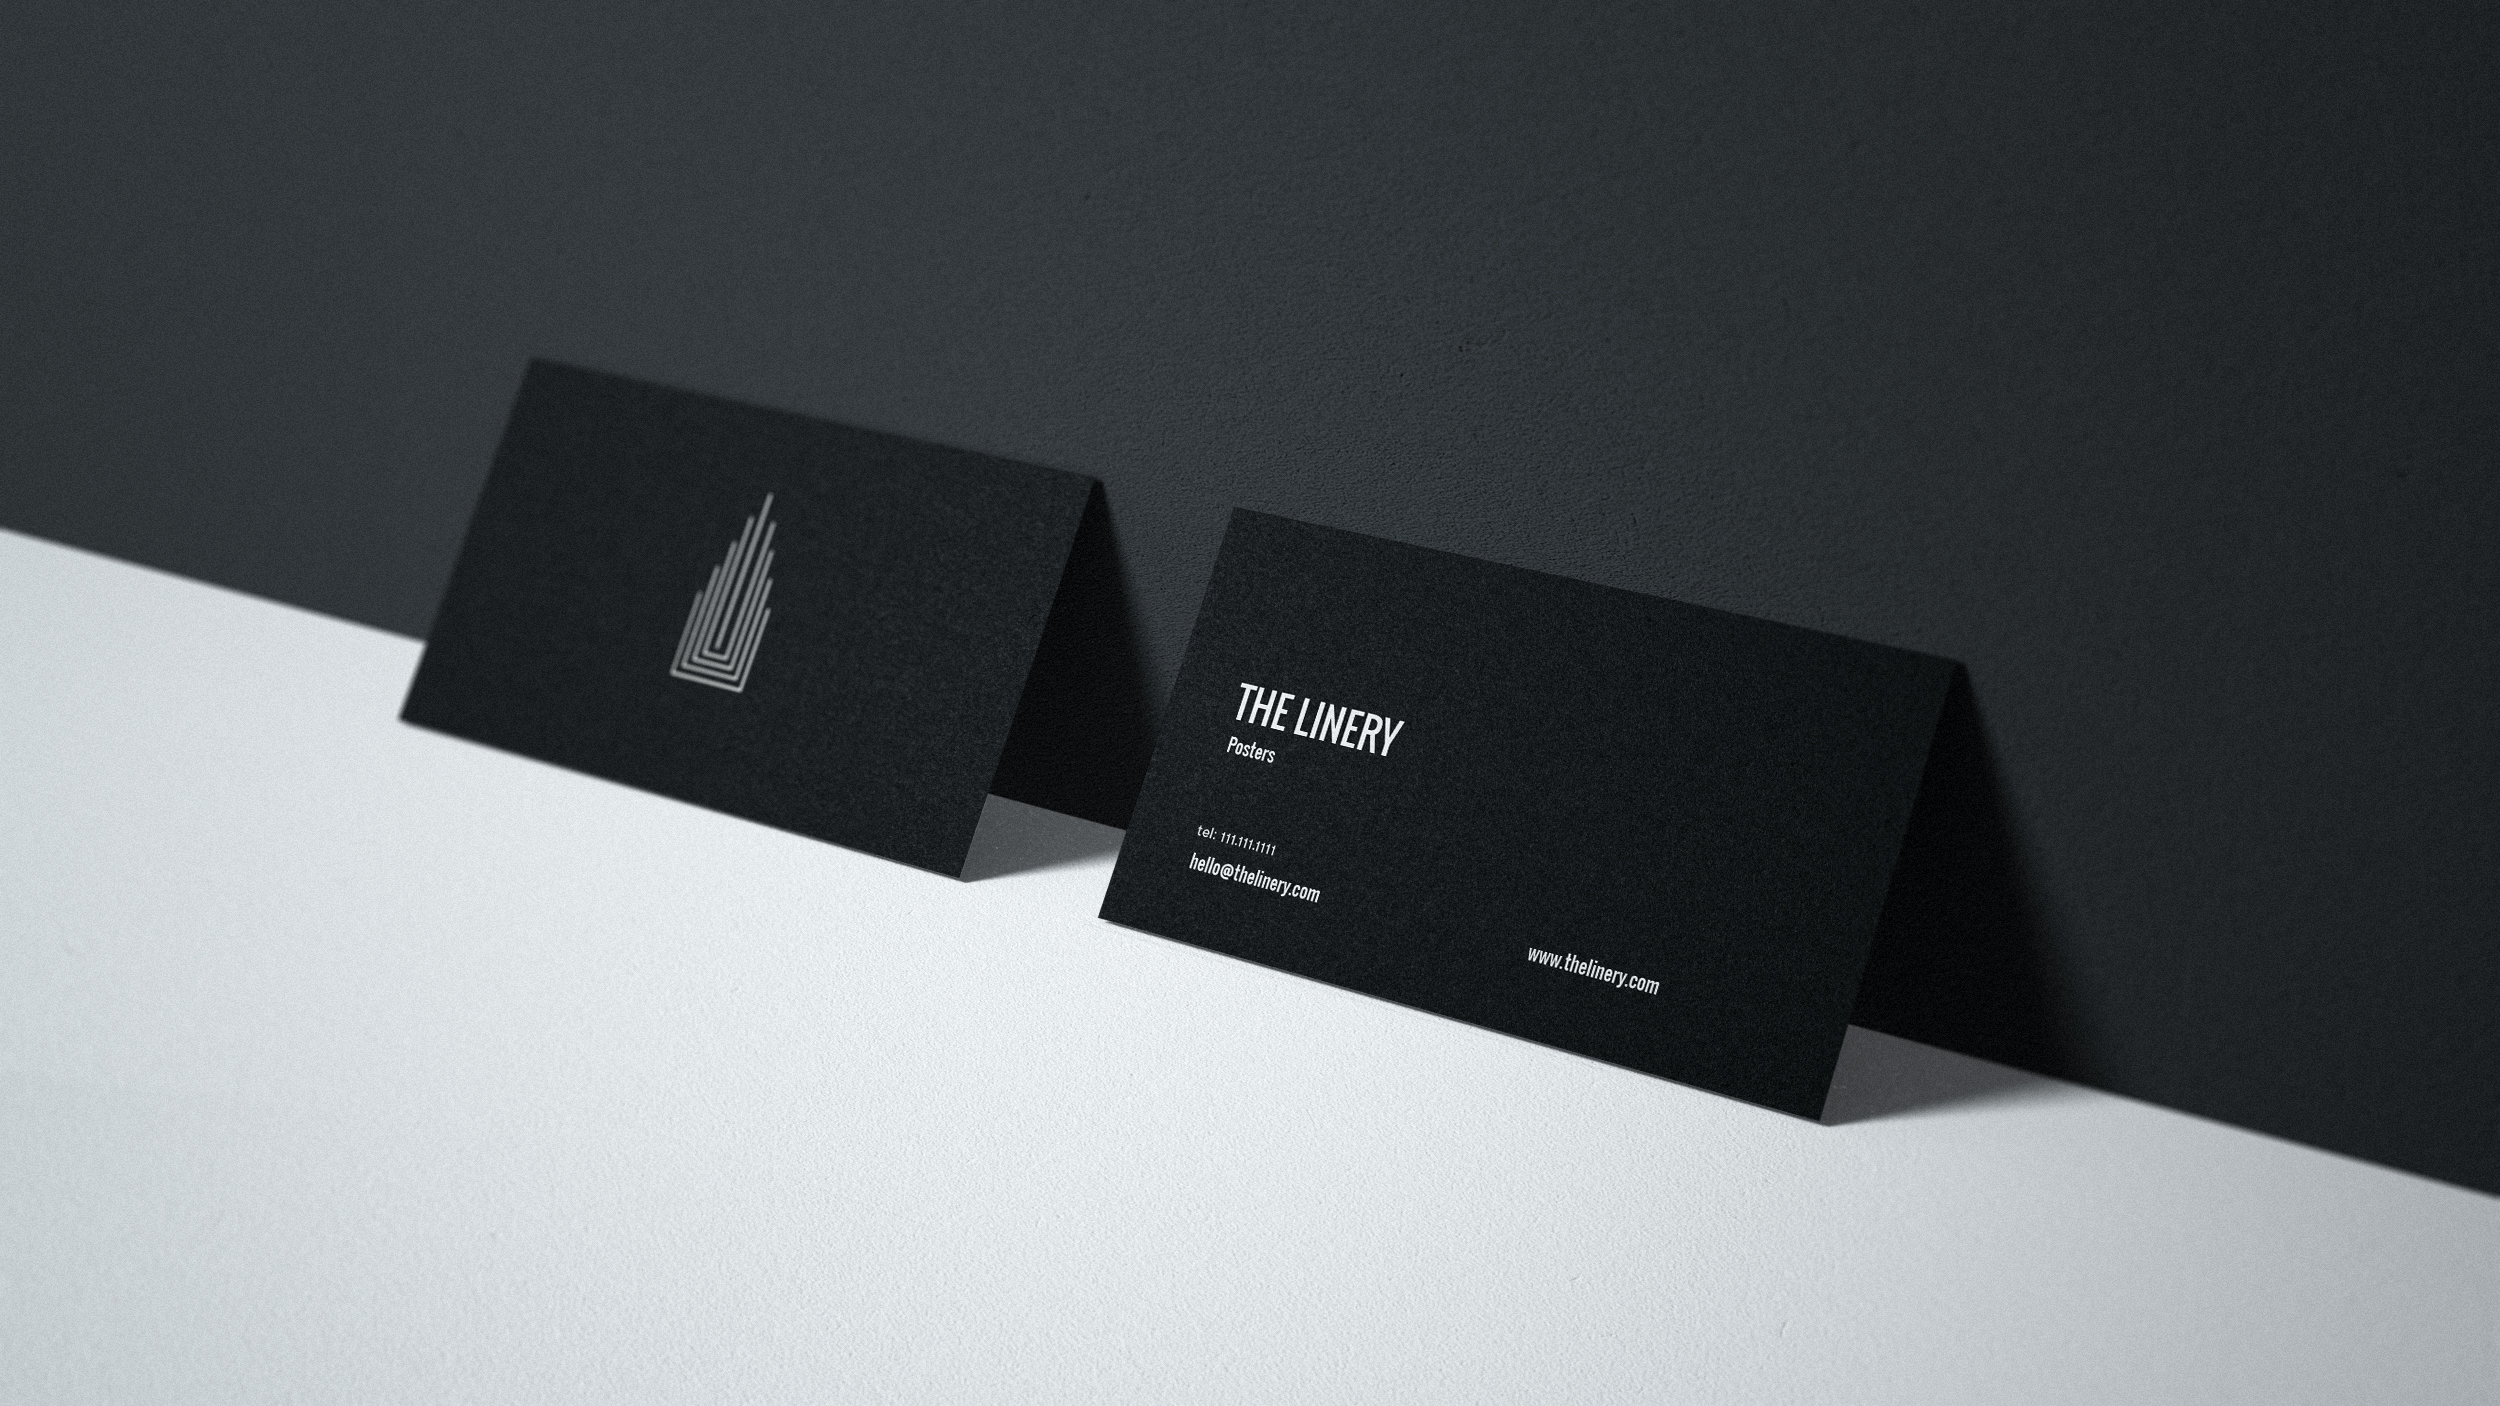 Business cards with branding